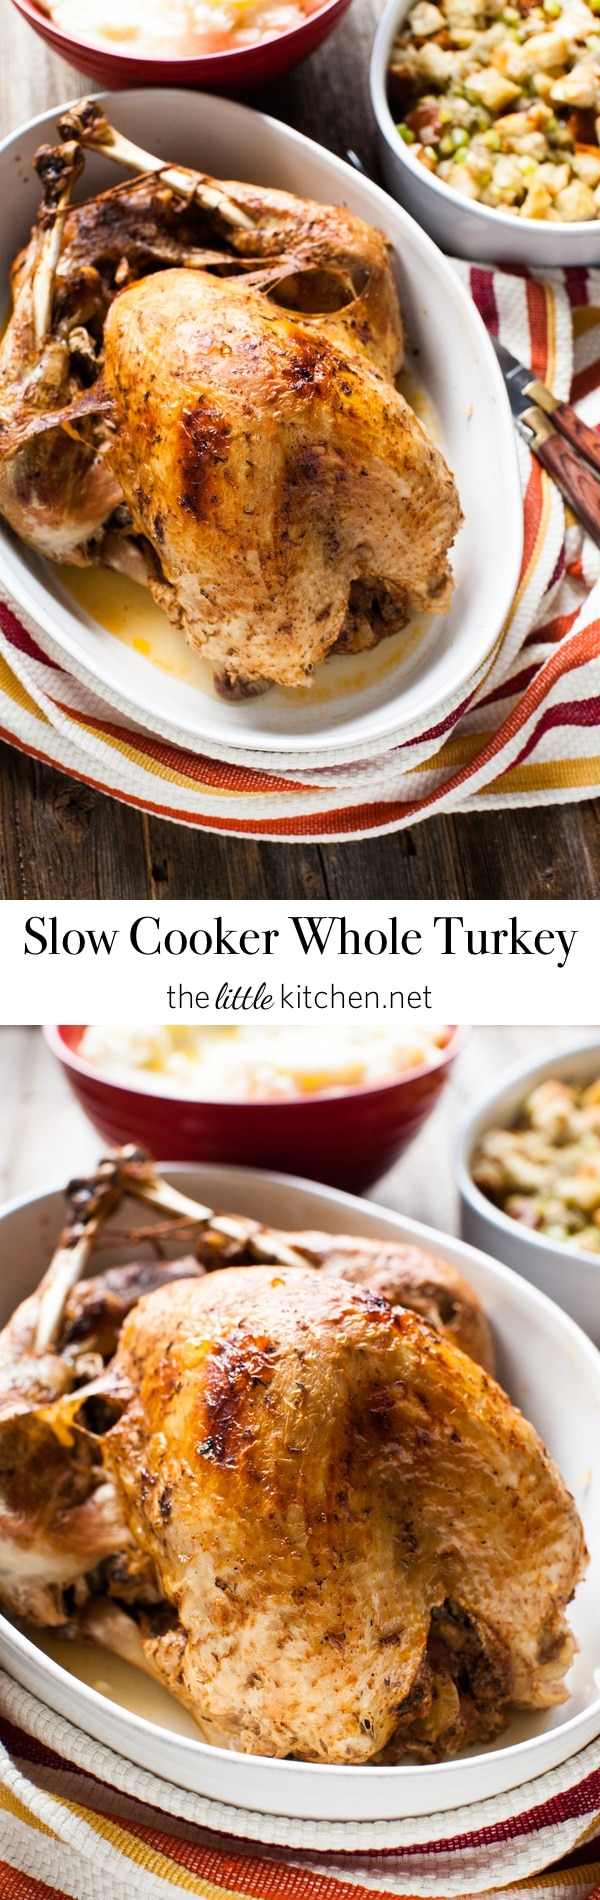 recipe: how to make pulled turkey from a whole turkey [3]